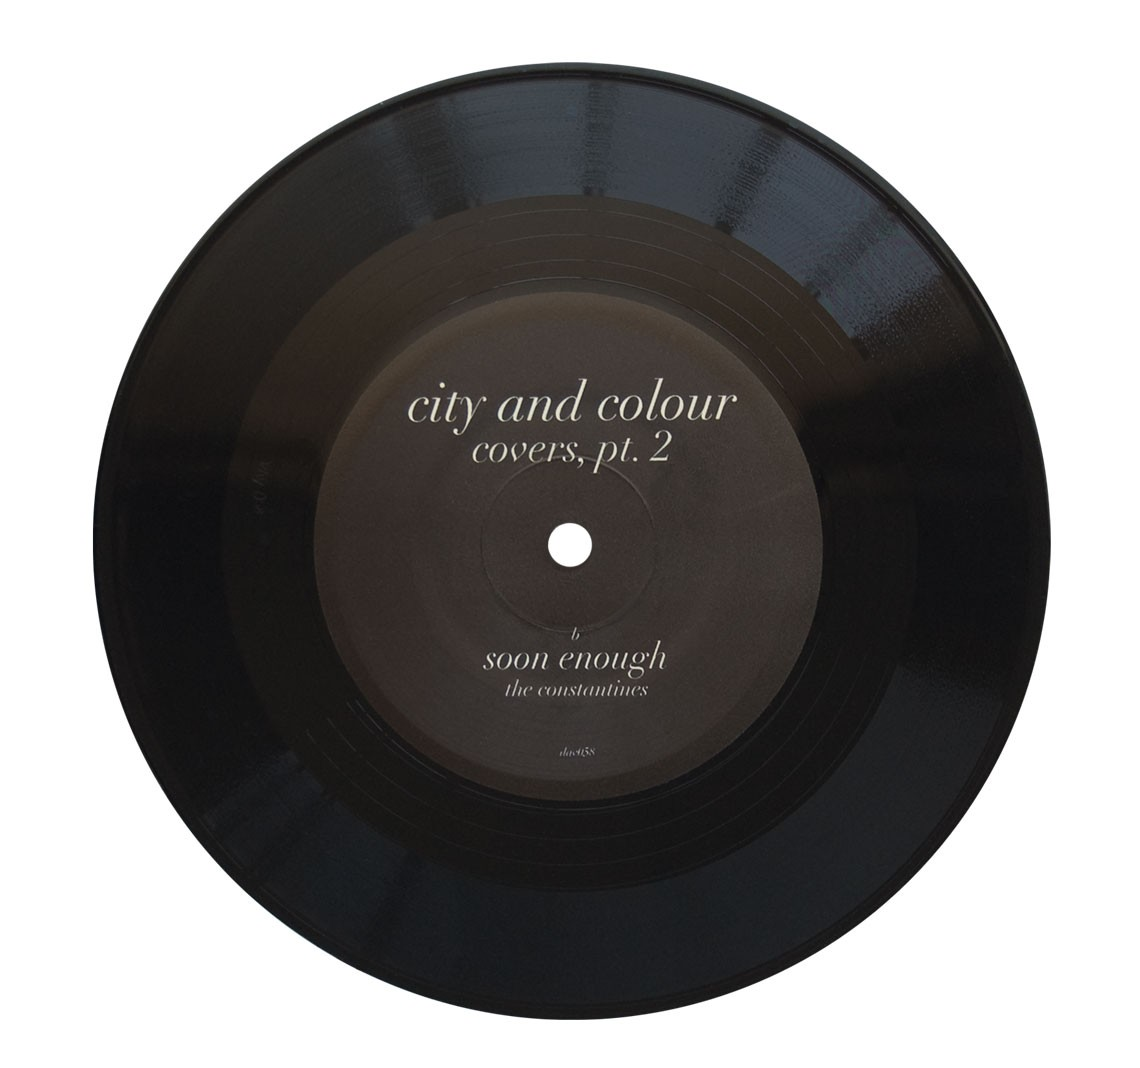 covers pt 2 7 vinyl black music city and colour online store. Black Bedroom Furniture Sets. Home Design Ideas